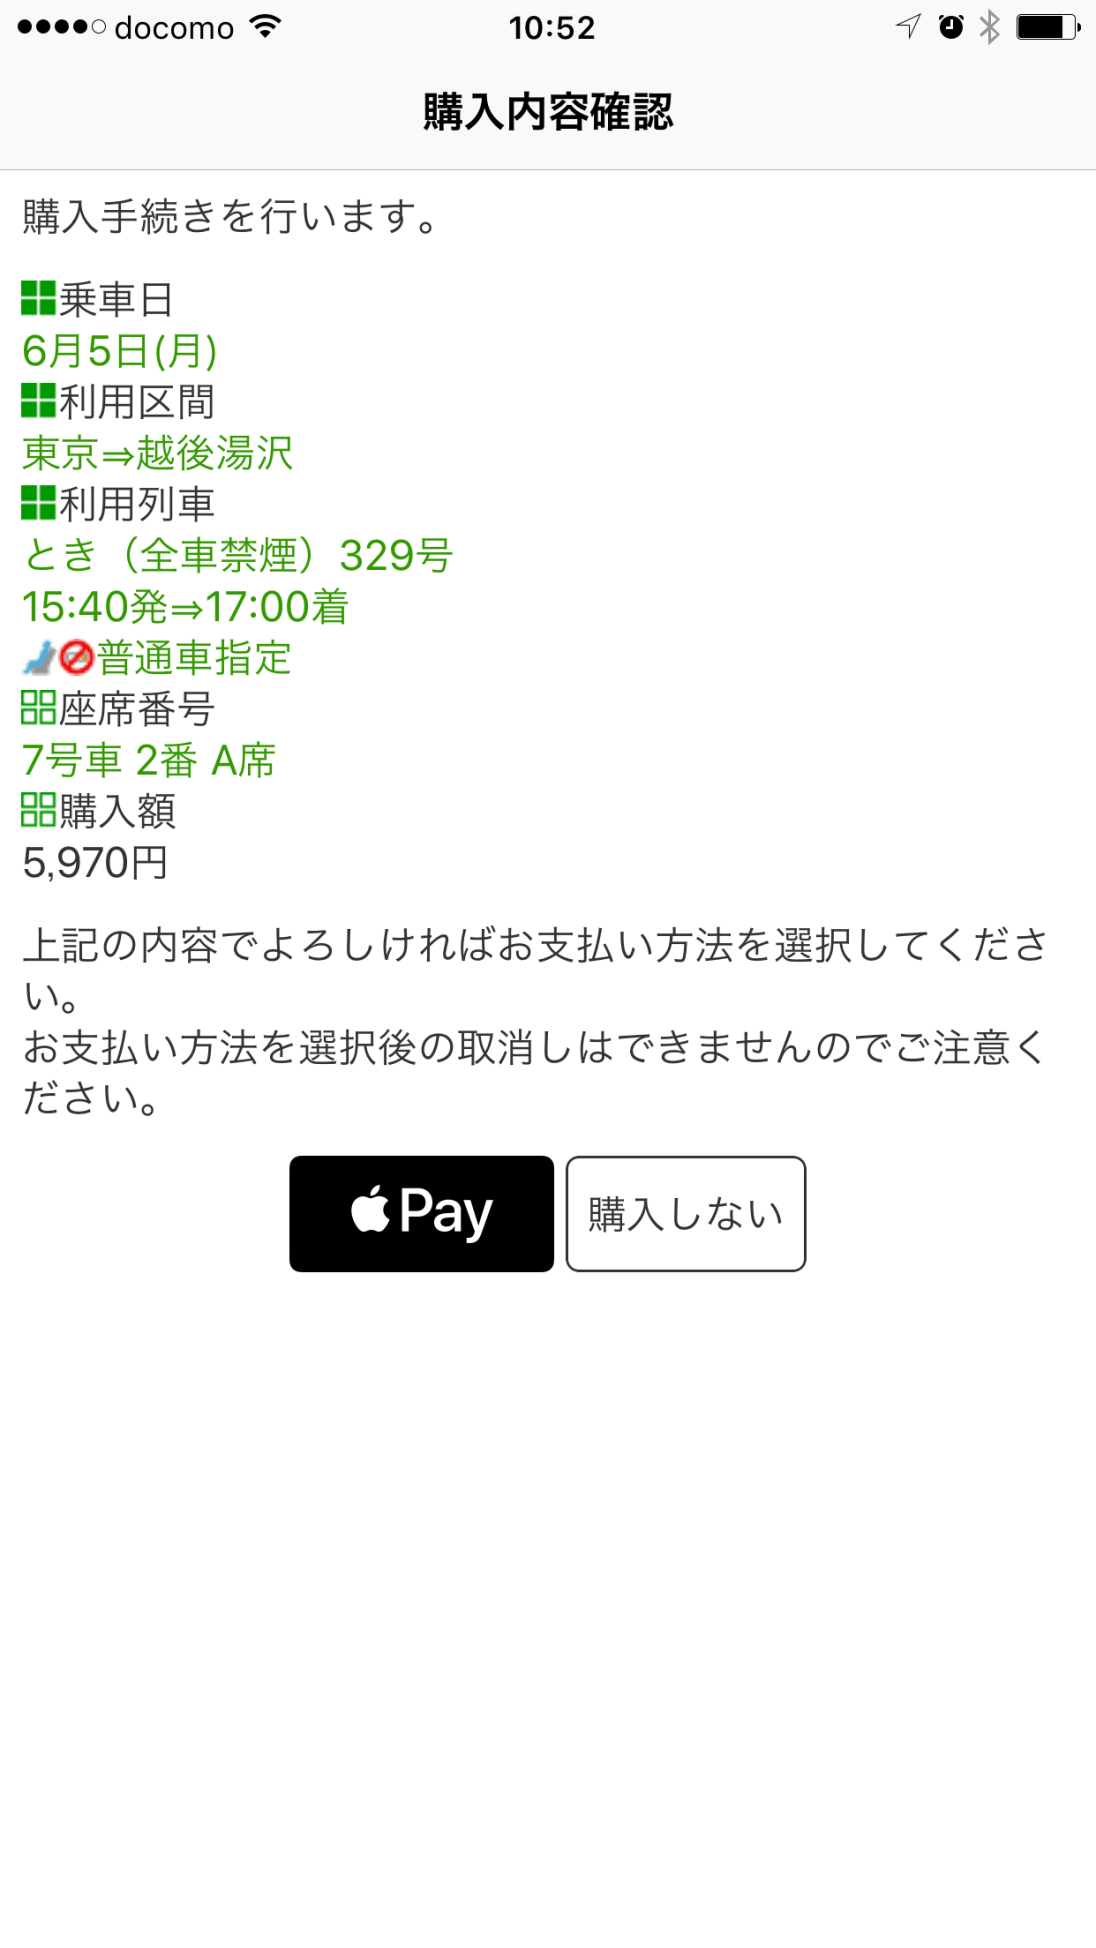 The last step is purchasing with Apple Pay and downloading your ticket to the Suica app before going through the Shinkansen ticket gate.